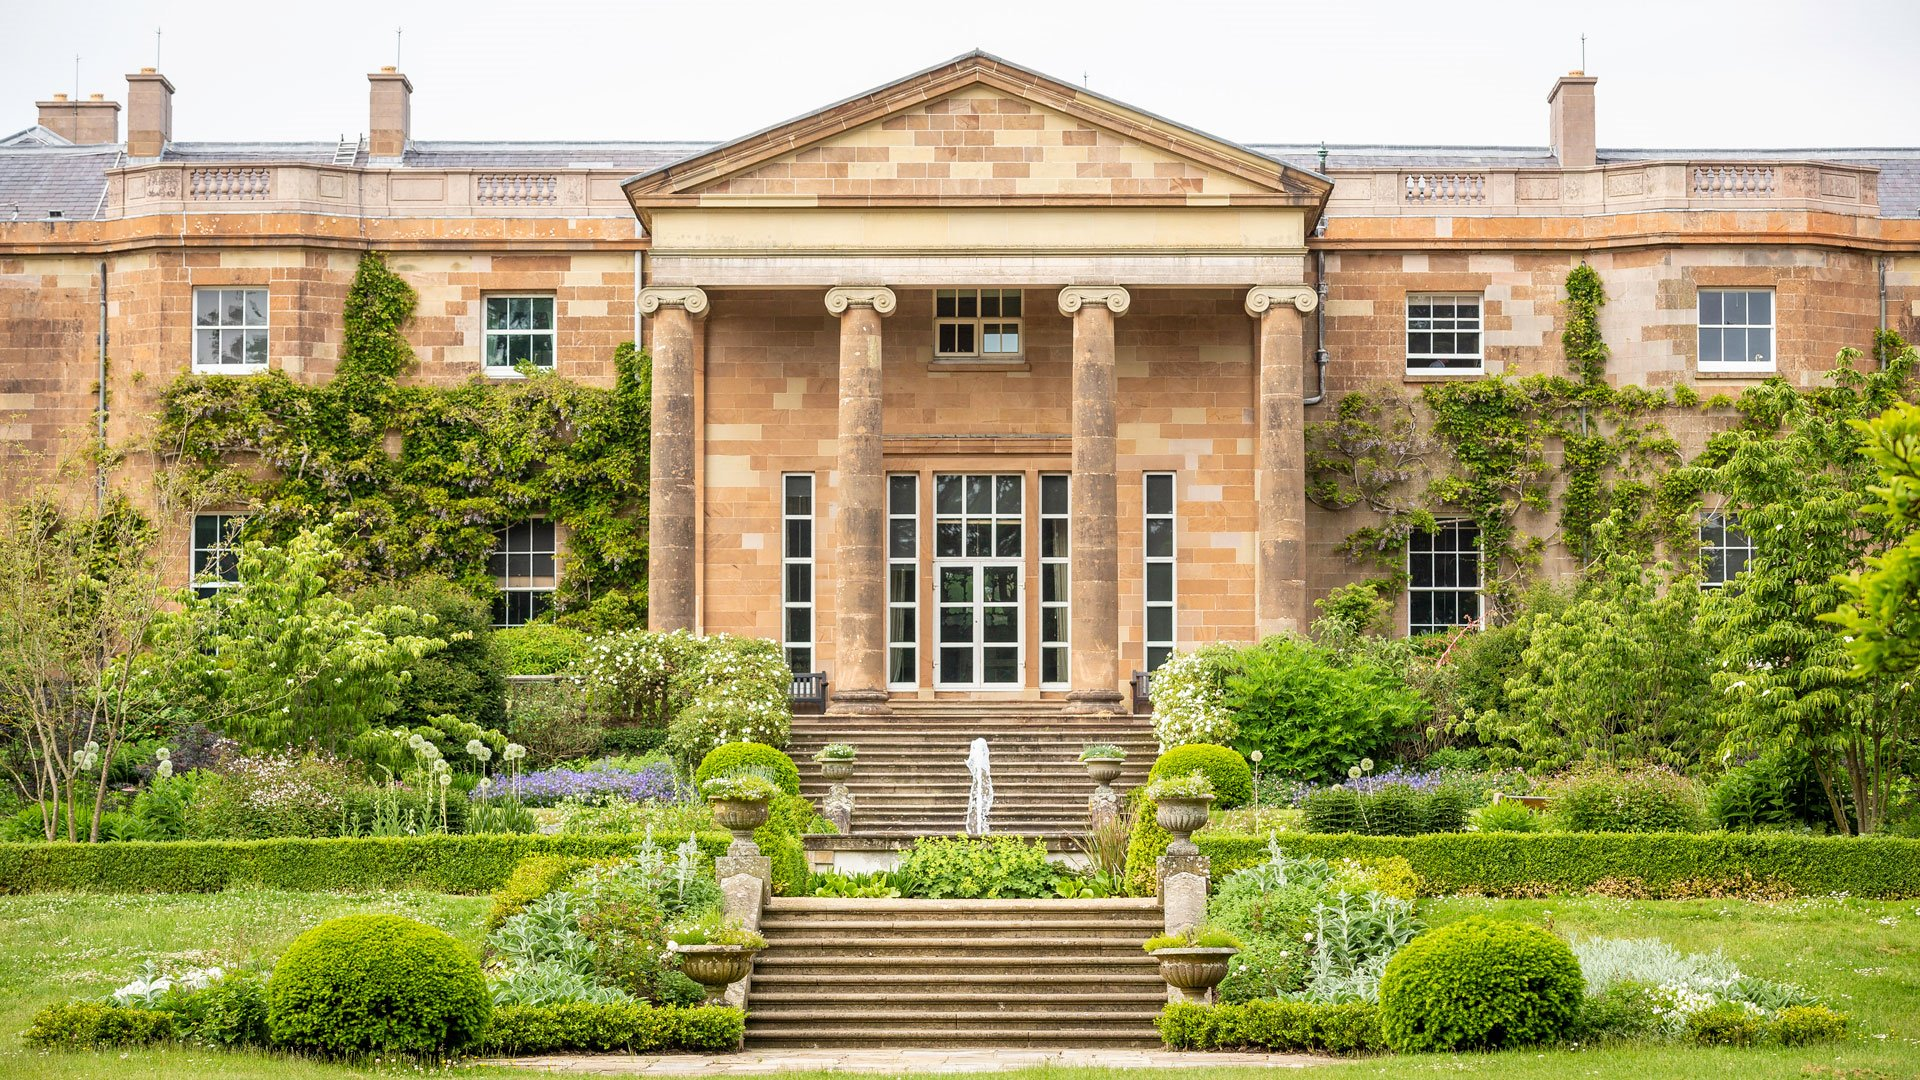 Hillsborough Castle casa de la familia britanica en escocia. Hillsborough Castle